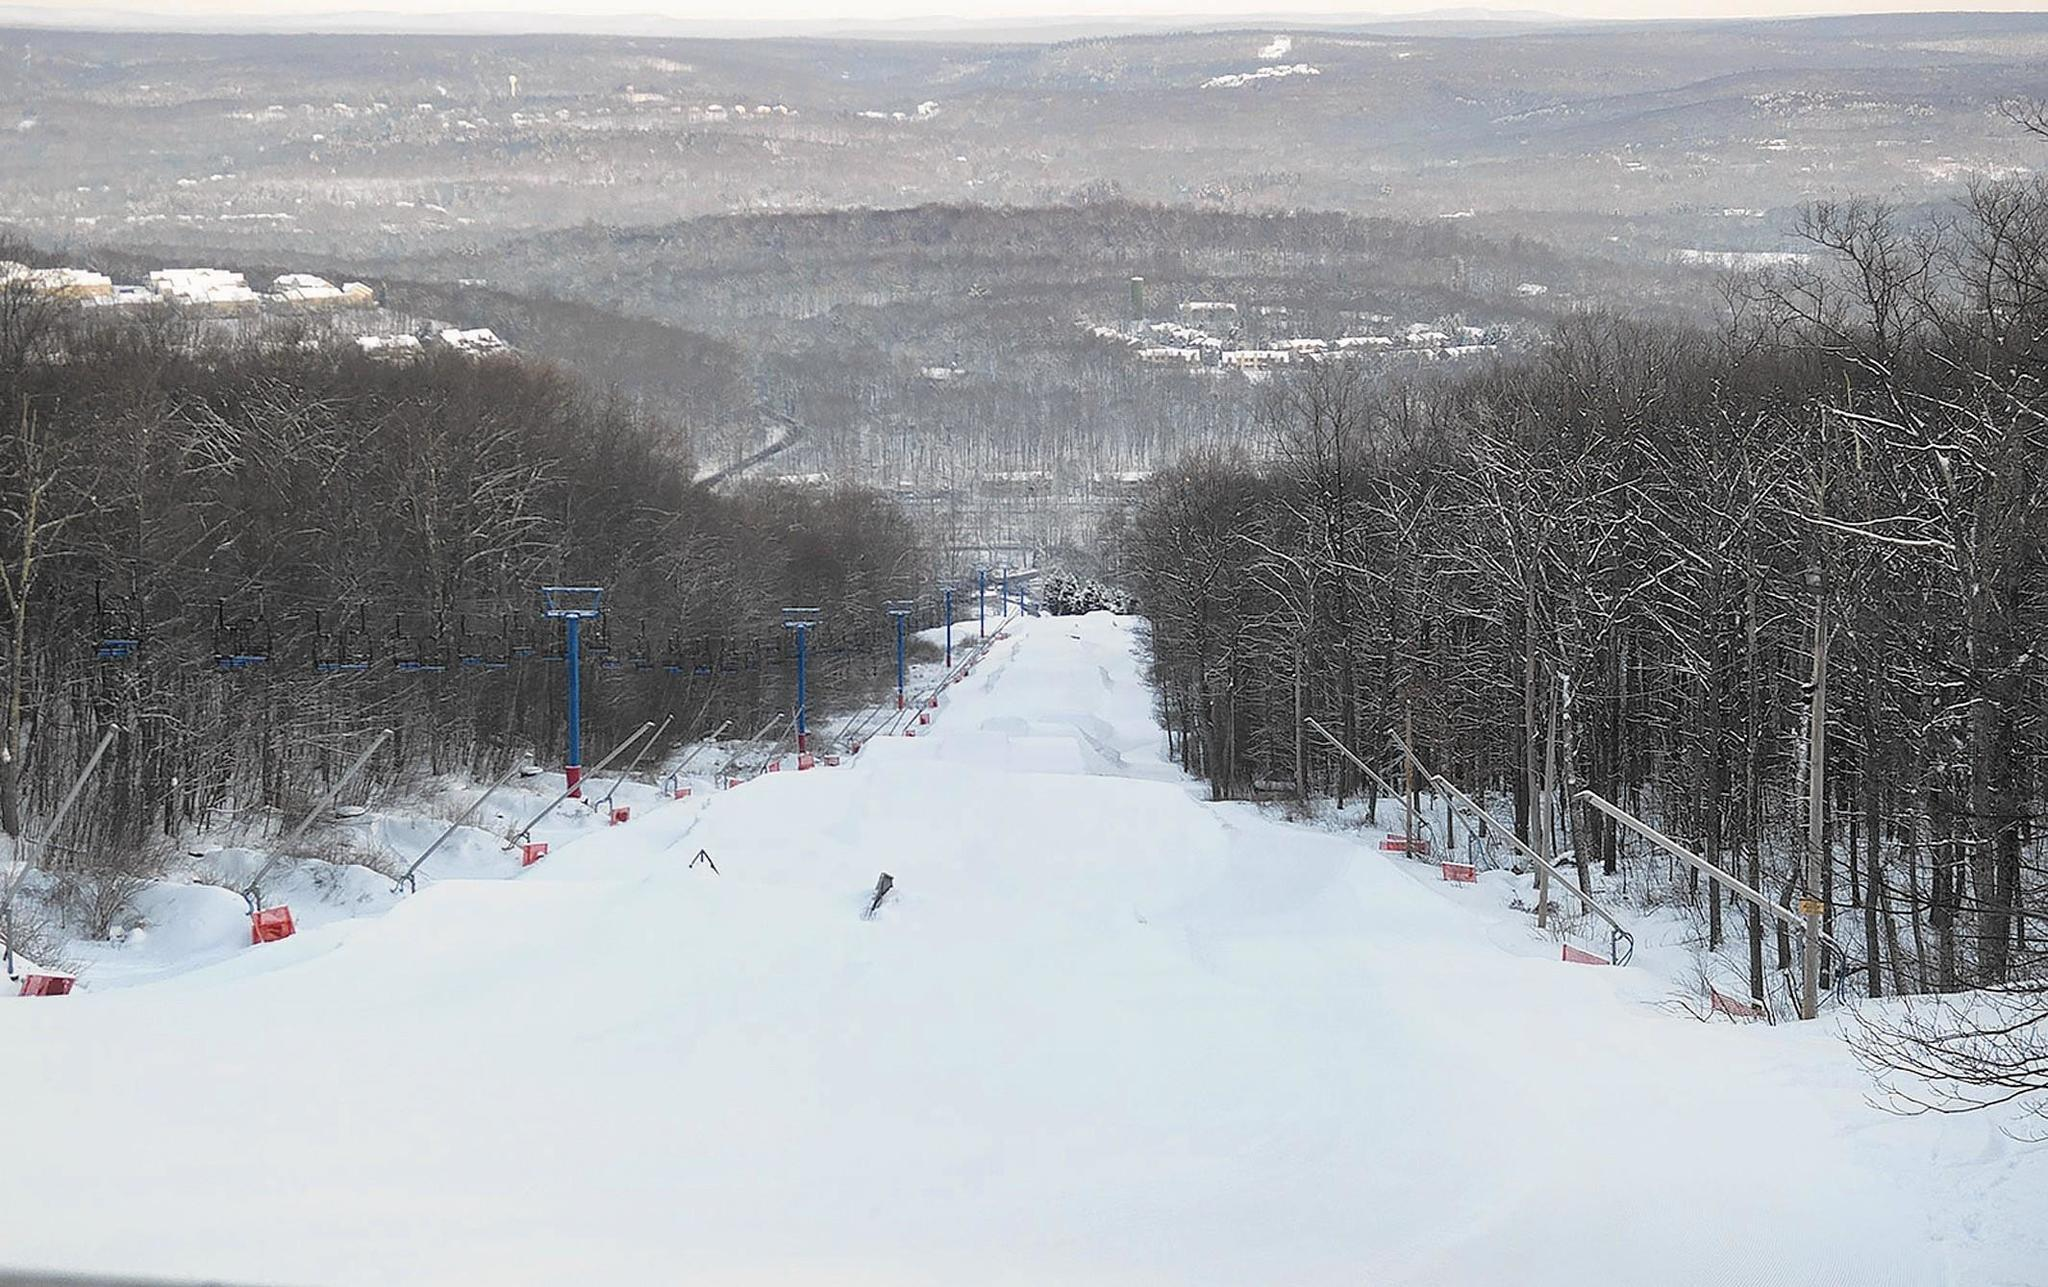 teen killed in accident at shawnee mountain ski area - the morning call